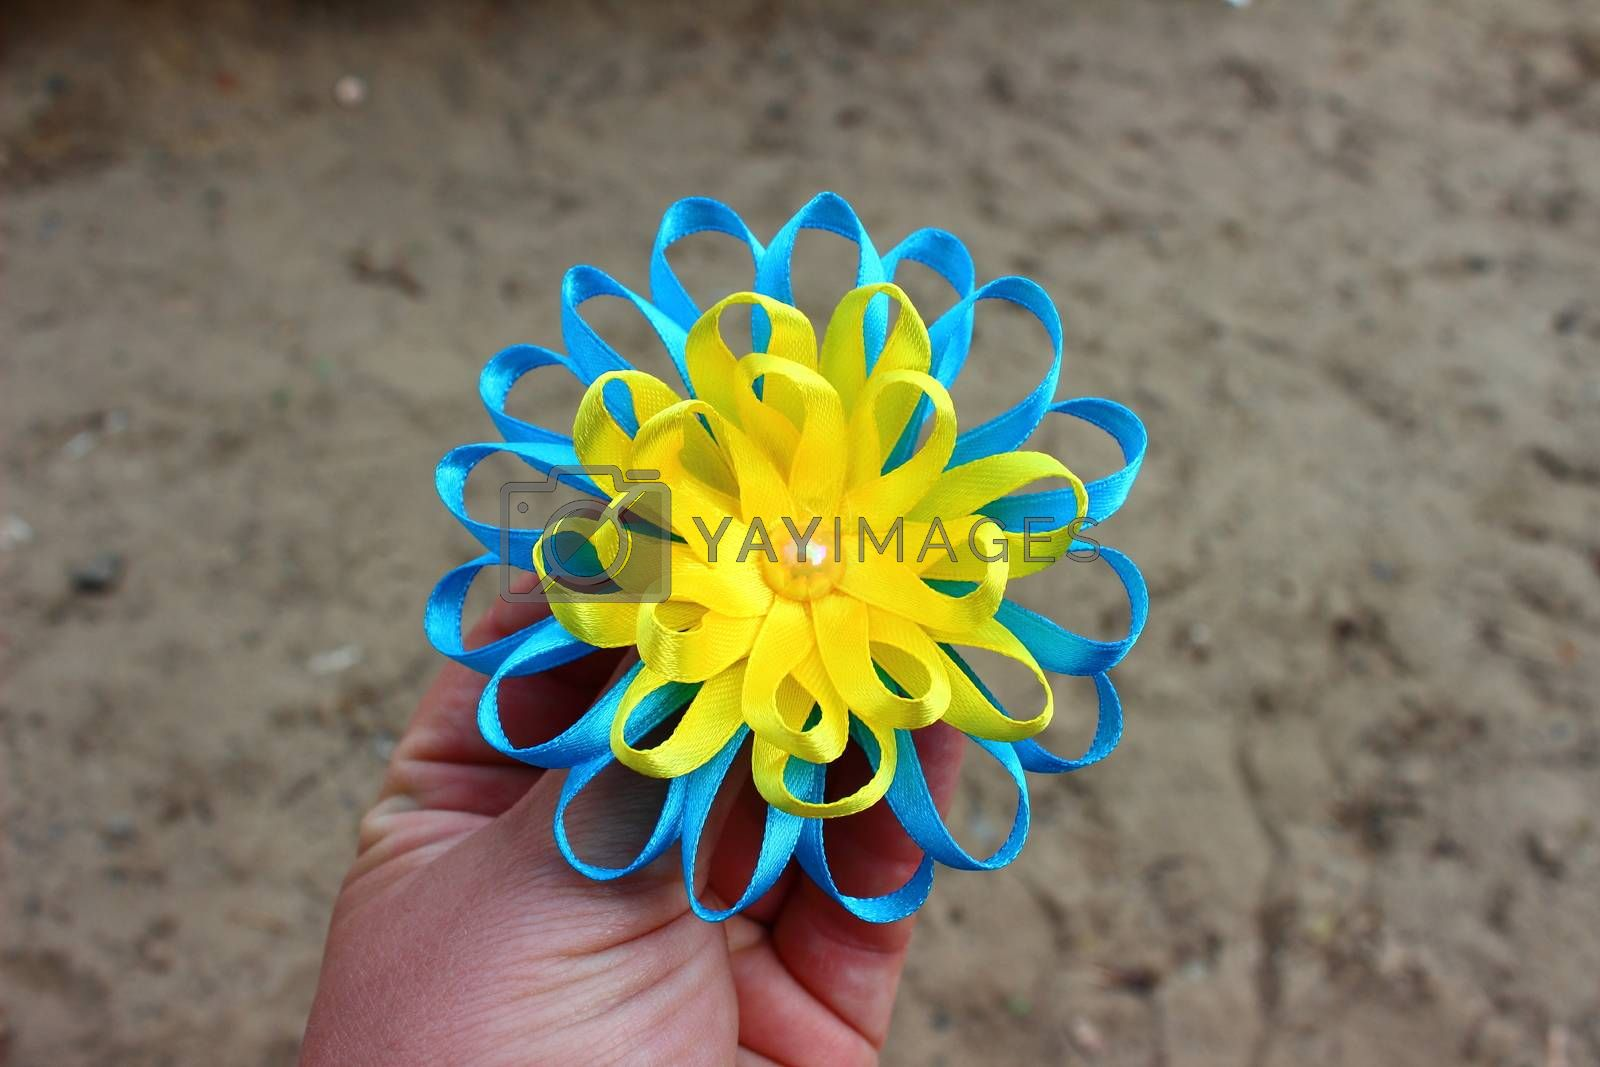 flower of yellow and blue ribbons with bead handmade